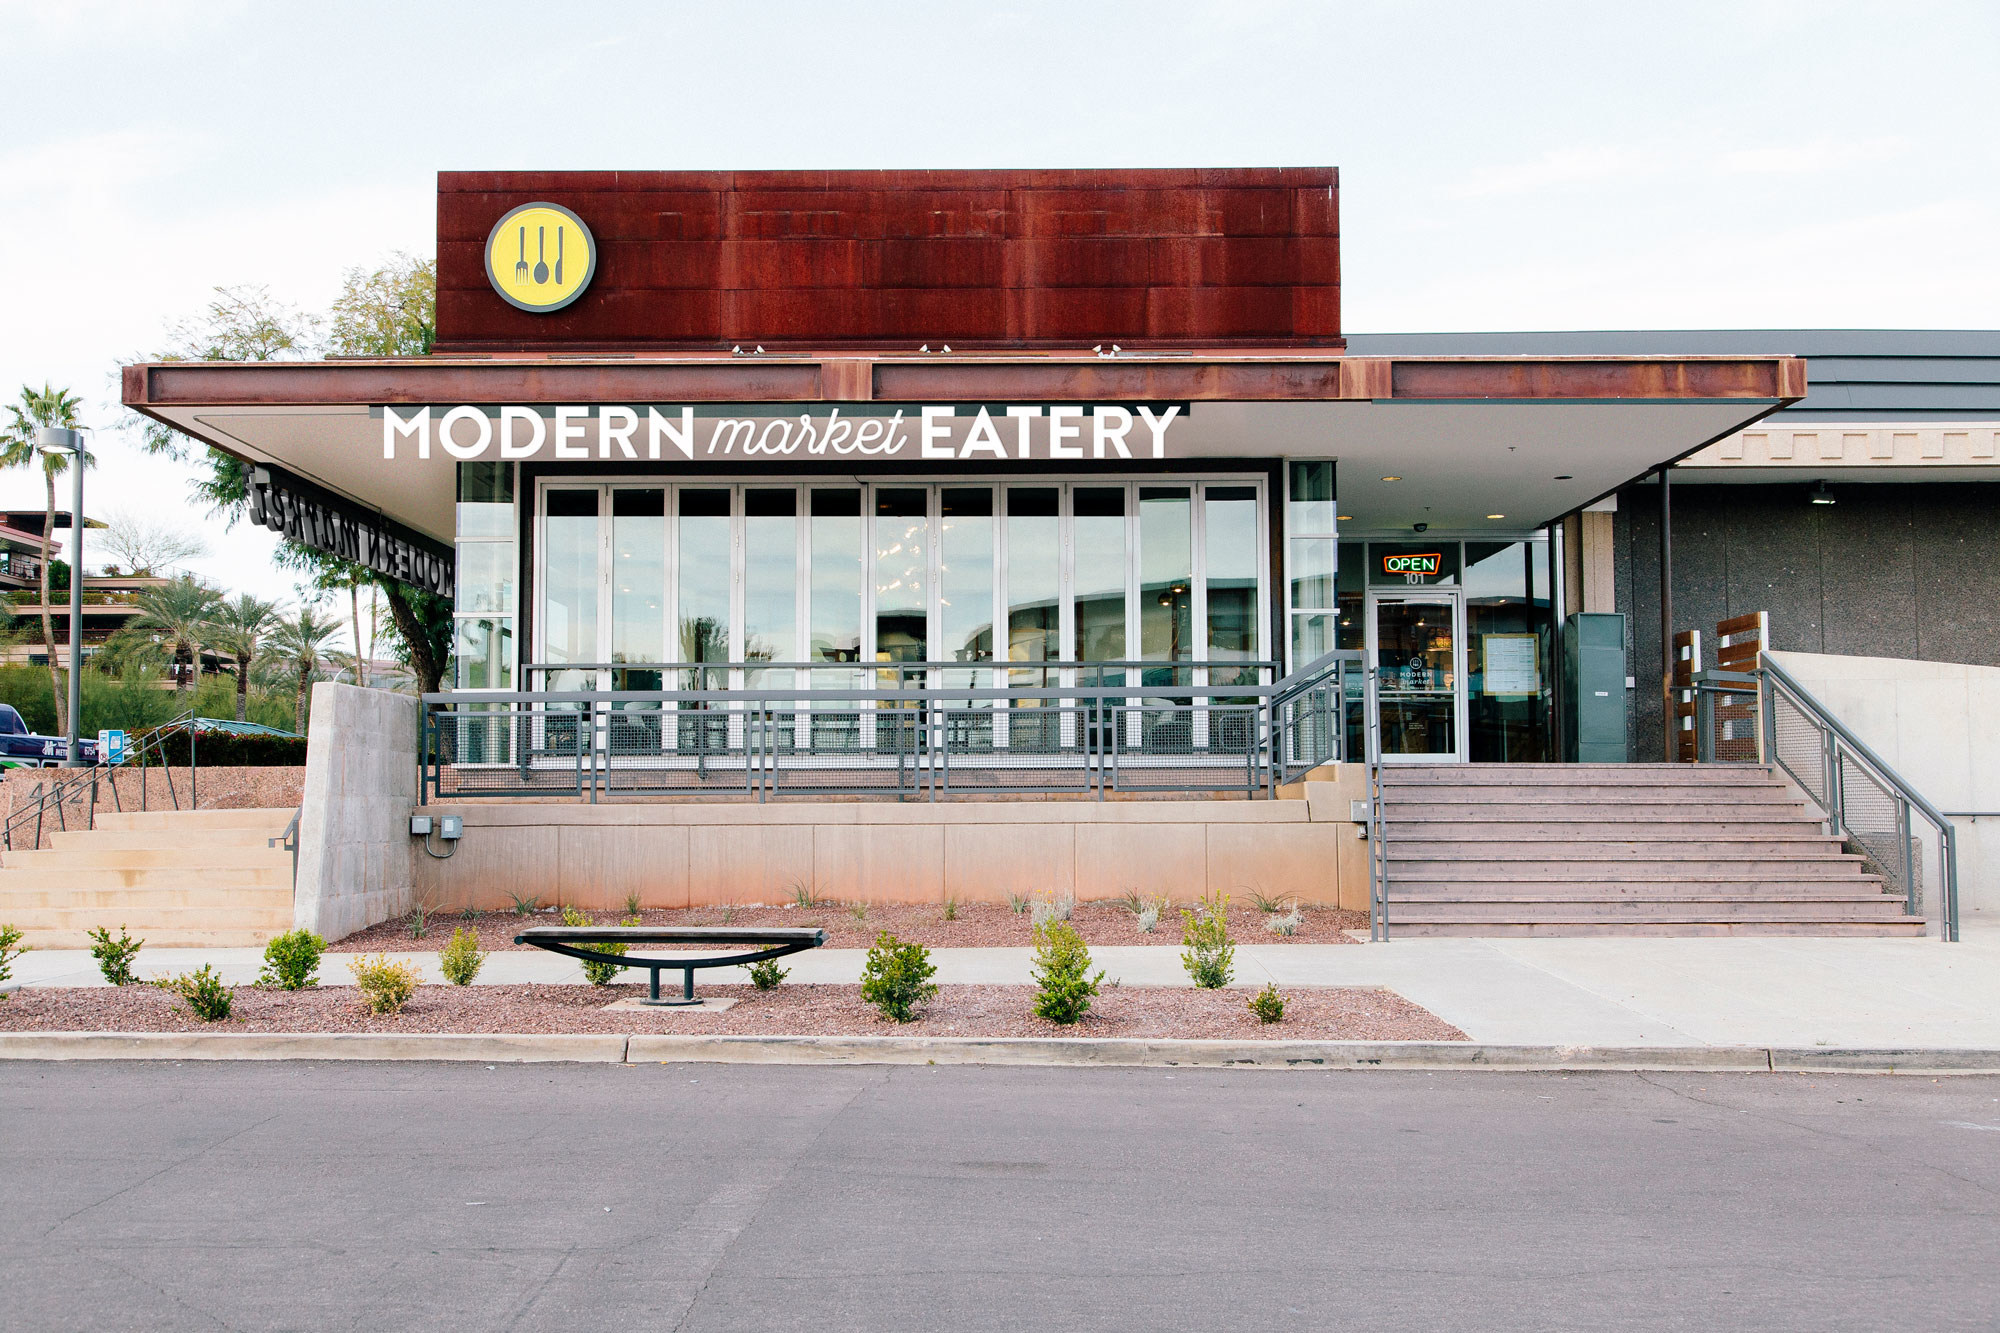 Modern Market Eatery Old Town Scottsdale.jpeg